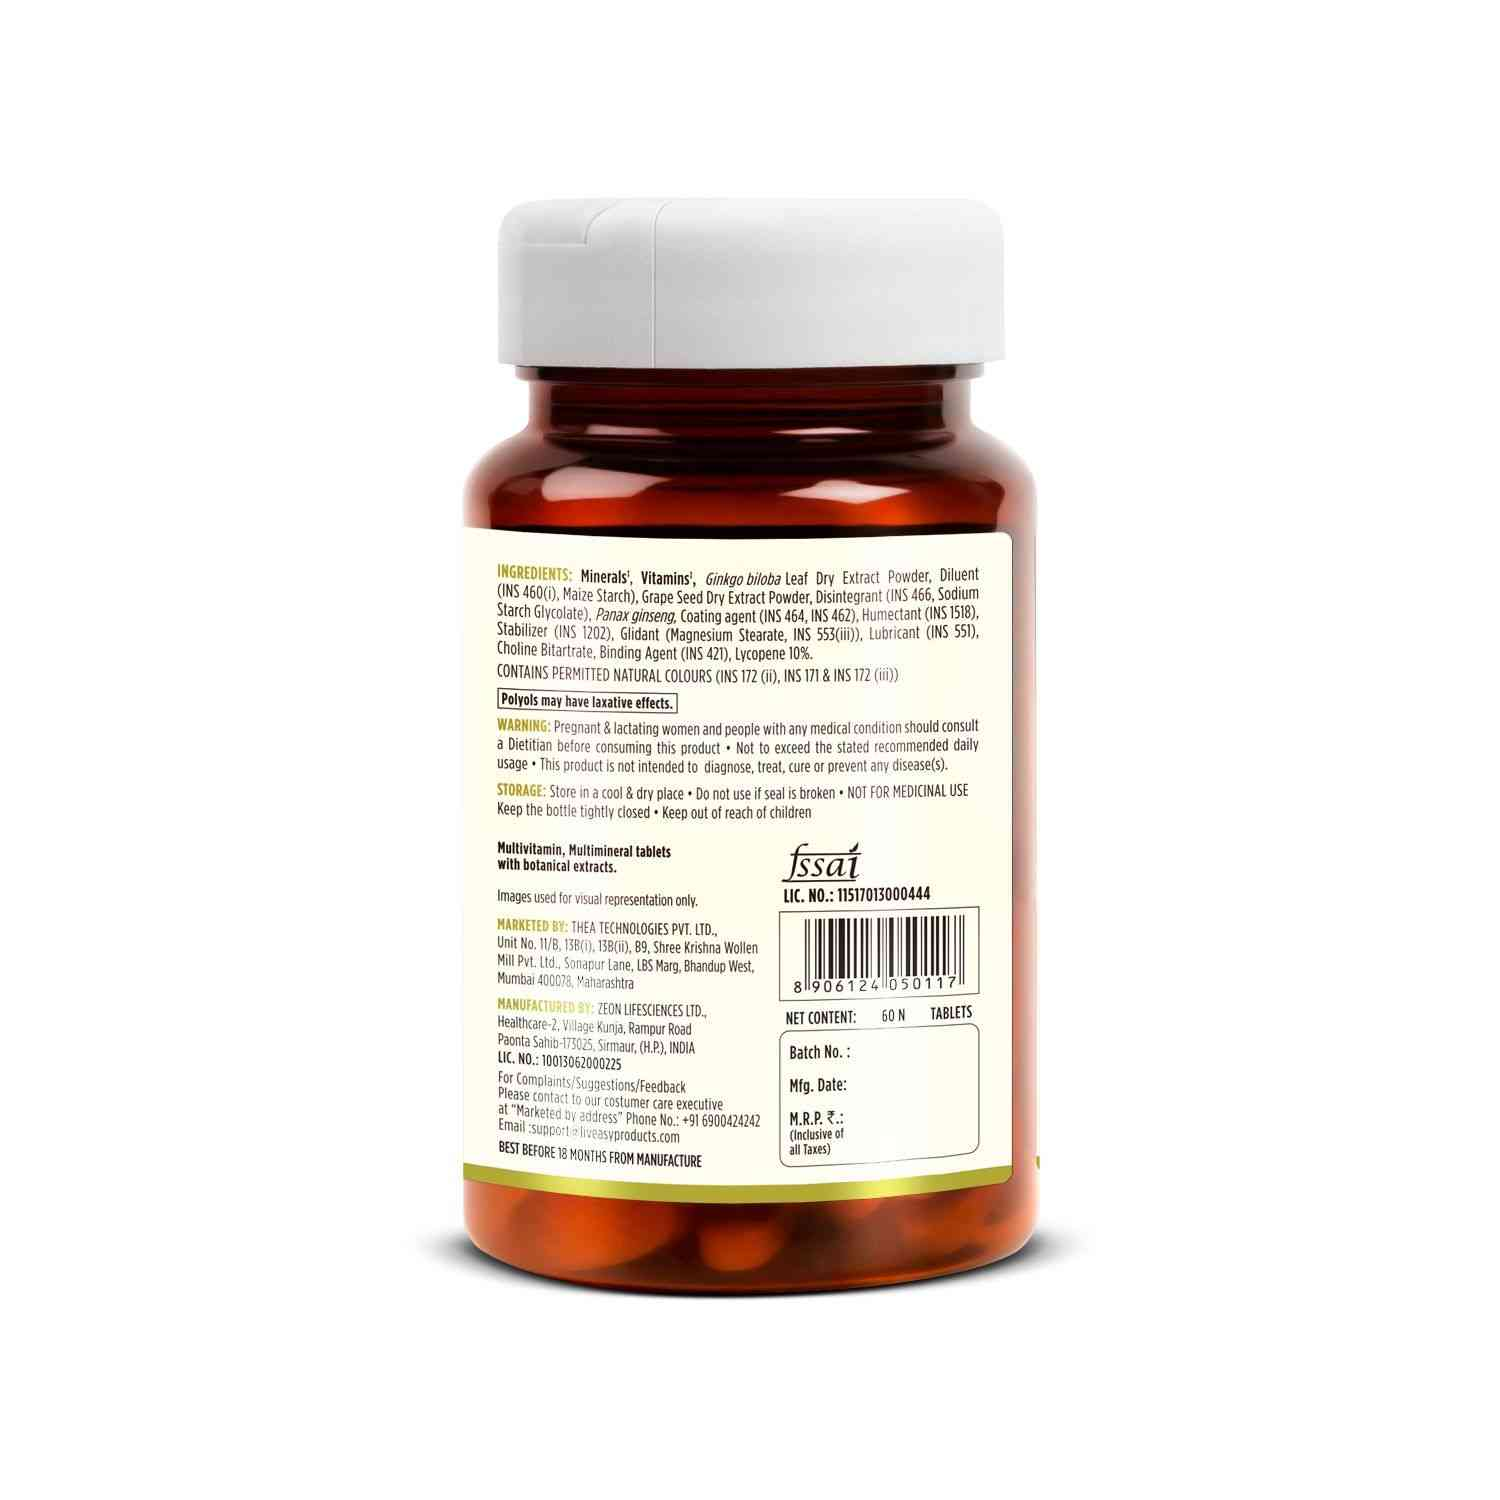 Liveasy Wellness Multivitamin Multimineral - Immunity Booster - Complete Nutrition - Bottle Of 60